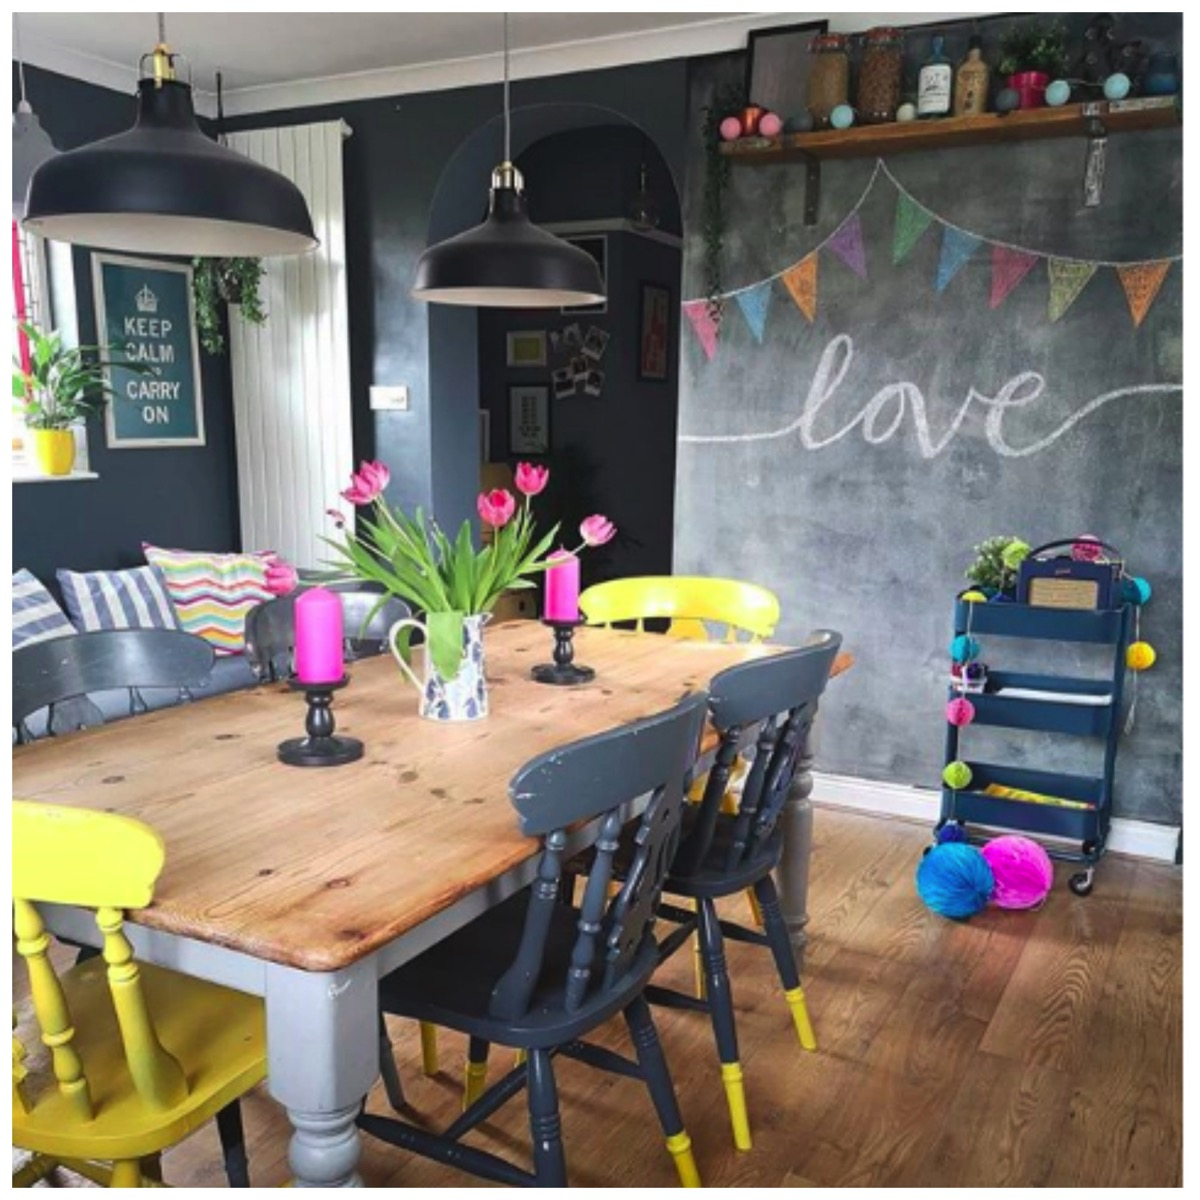 colorful-kitchen-chalkboard-wall-idea-farm-house-kitchen-1930s-home-vintage-home-flawsomehome.jpg